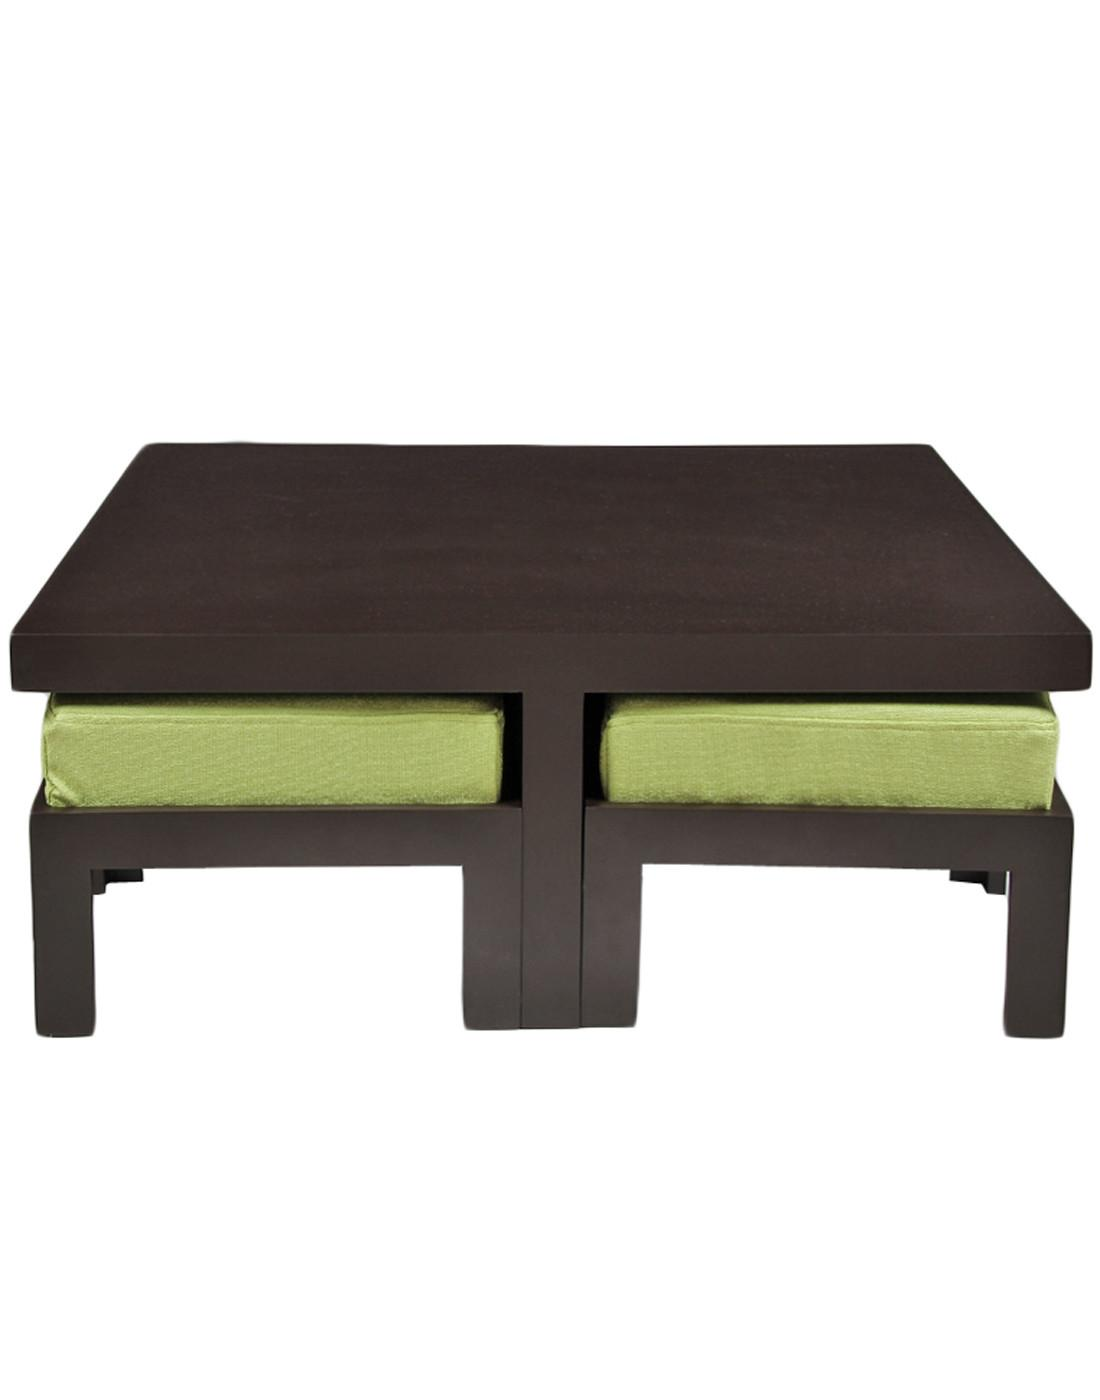 Buy Arra Trendy Coffee Table Four Stools Green